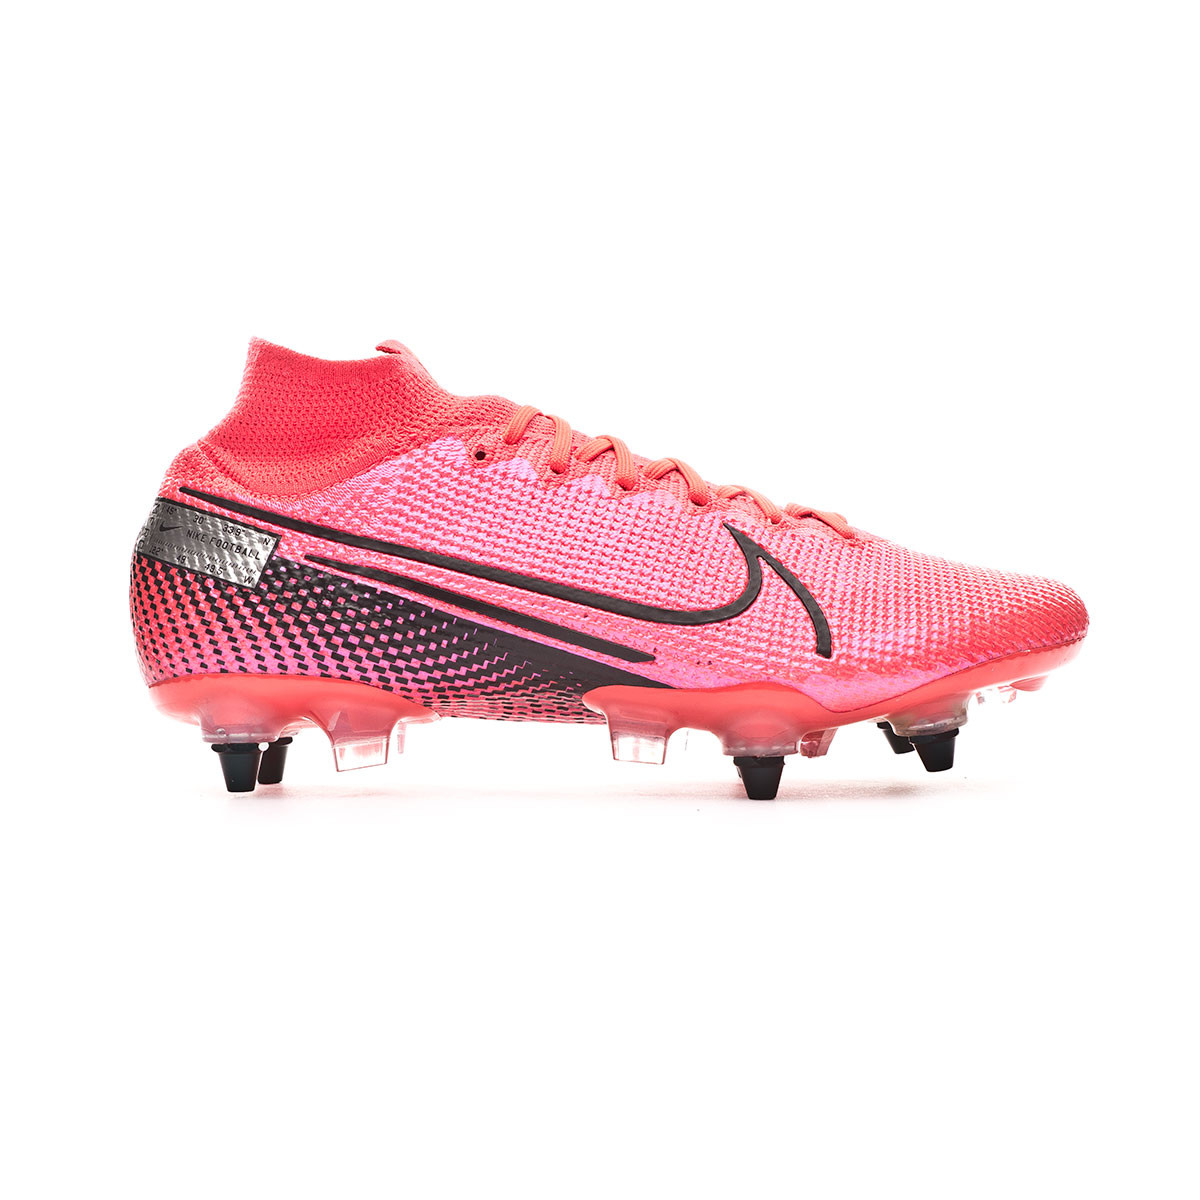 Chaussure de foot Nike Mercurial Superfly VII Elite SG PRO Anti Clog Traction